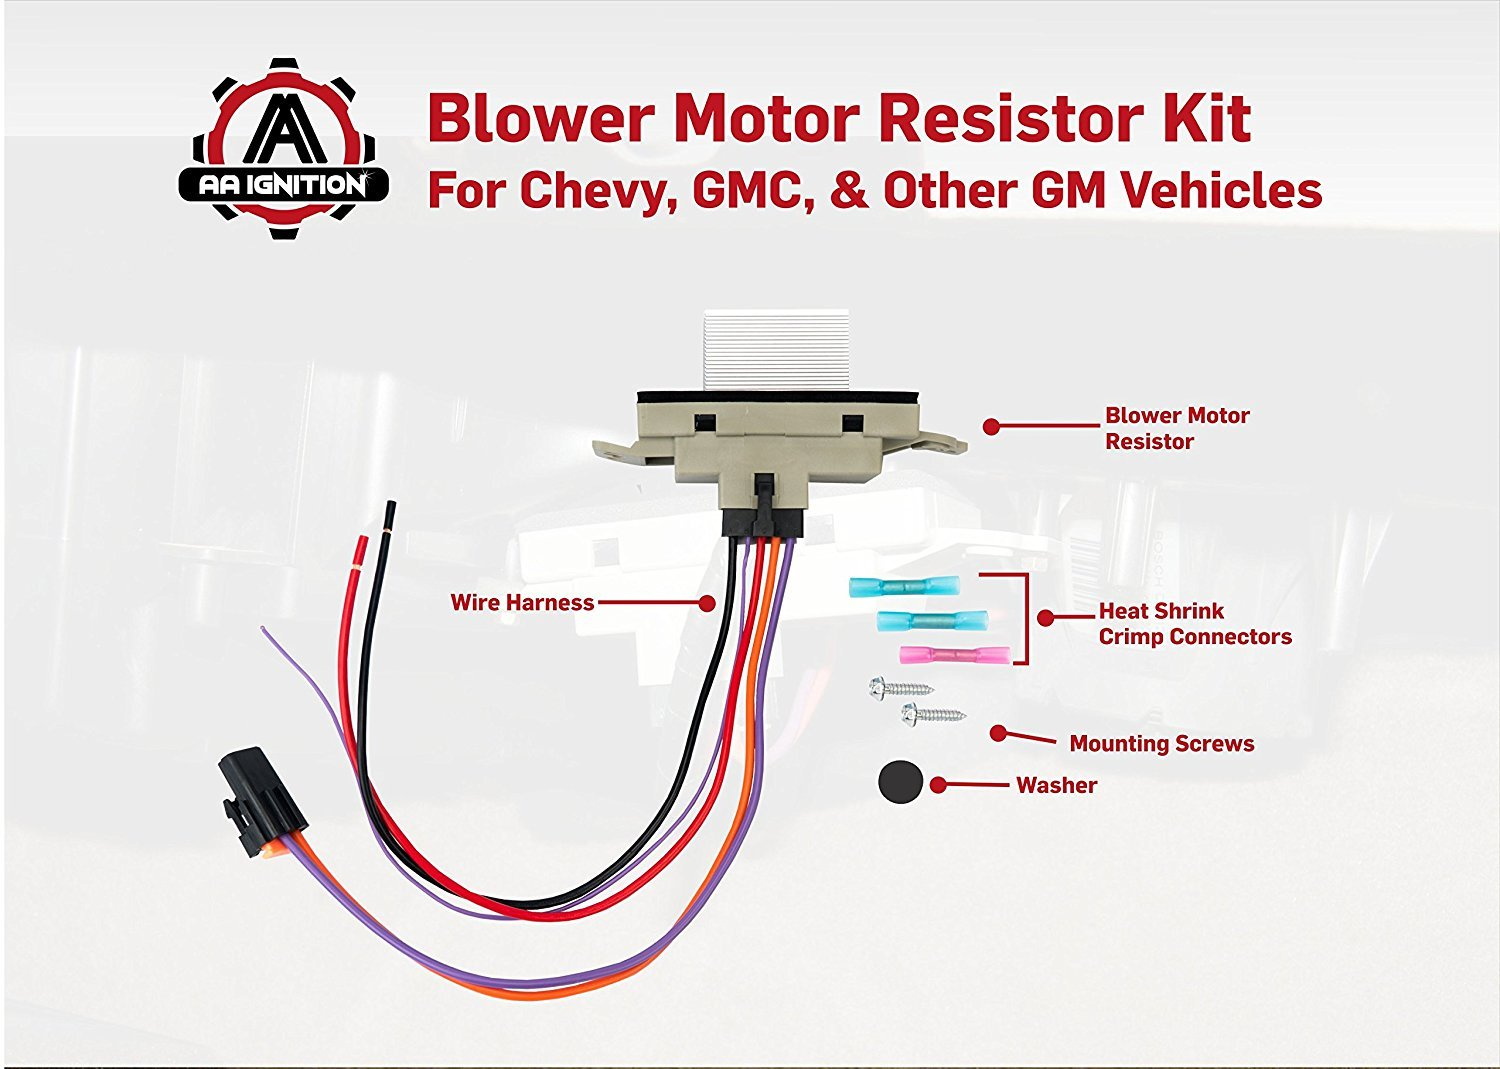 Blower Motor Resistor Complete Kit With Harness Pontiac 2 4 Engine Diagram Ac Low Port Replaces 15 81773 89018778 89019351 1581773 Fits Chevy Silverado Tahoe